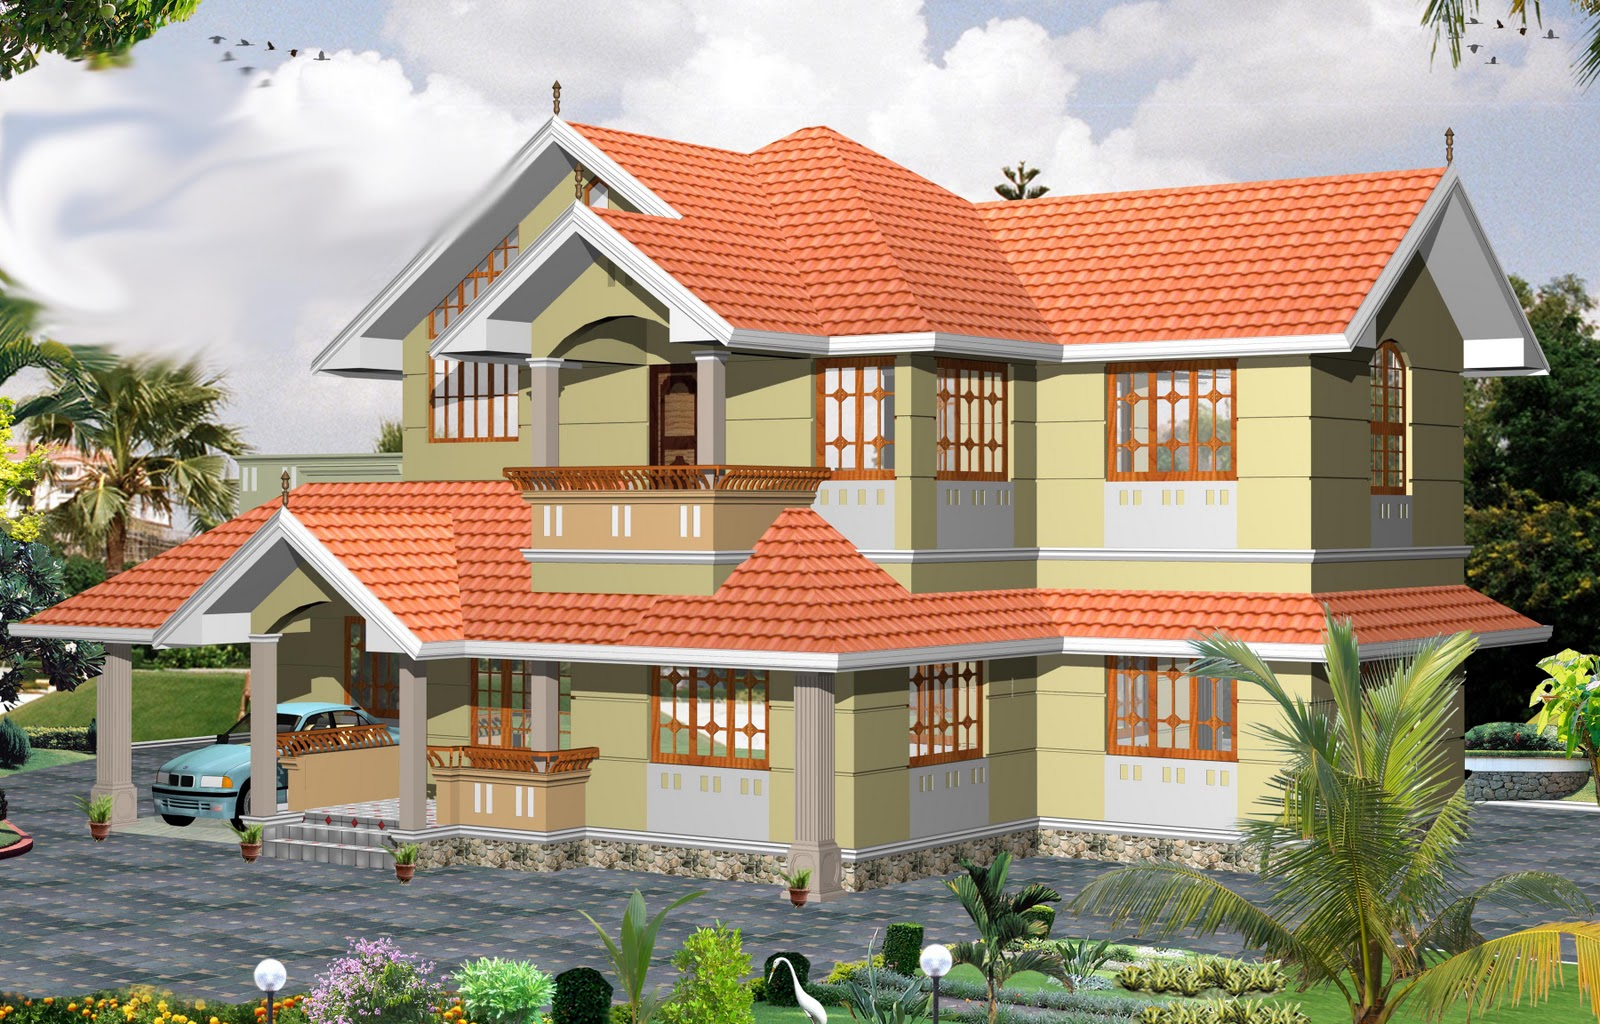 Kerala building construction 2000 sqft 3bhk house plan kerala home floor plans with photo In home design